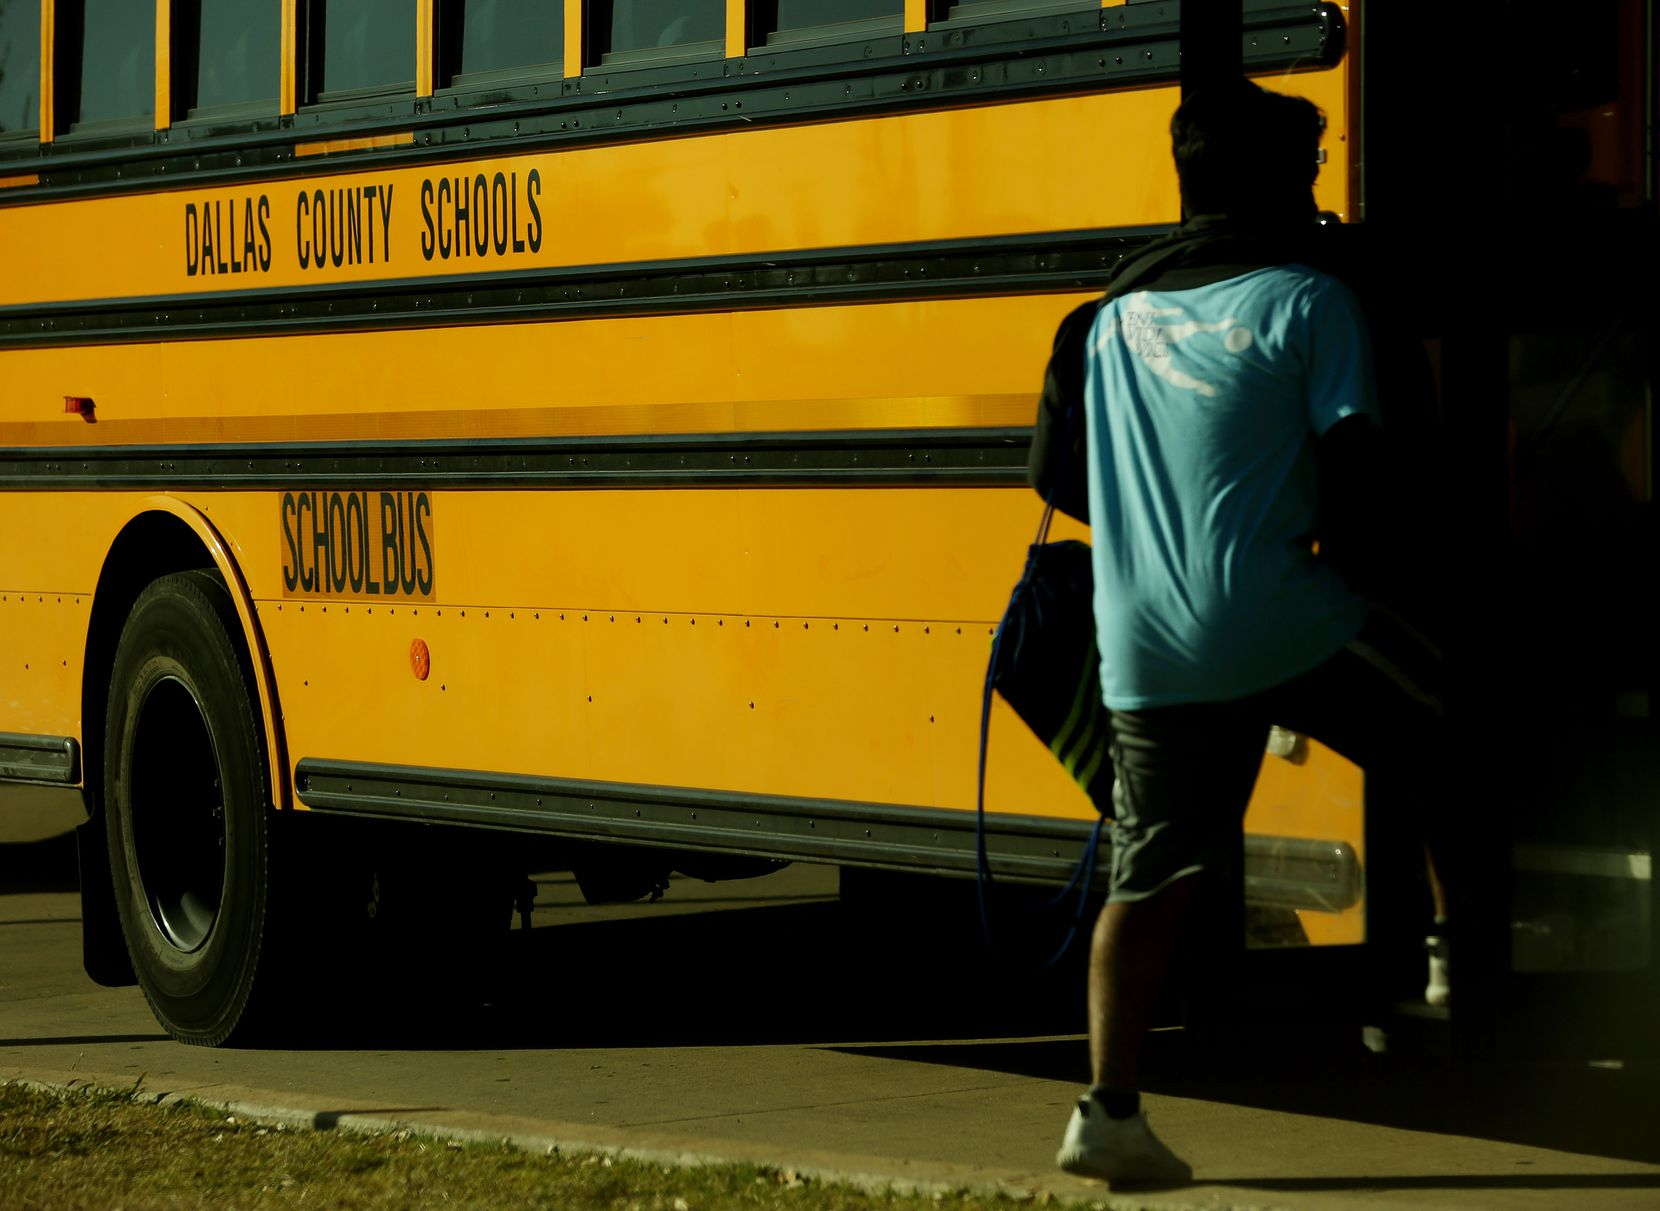 Voters chose to abolish the Dallas County Schools bus agency last November in the wake of NBC-5 reports on financial mismanagement.